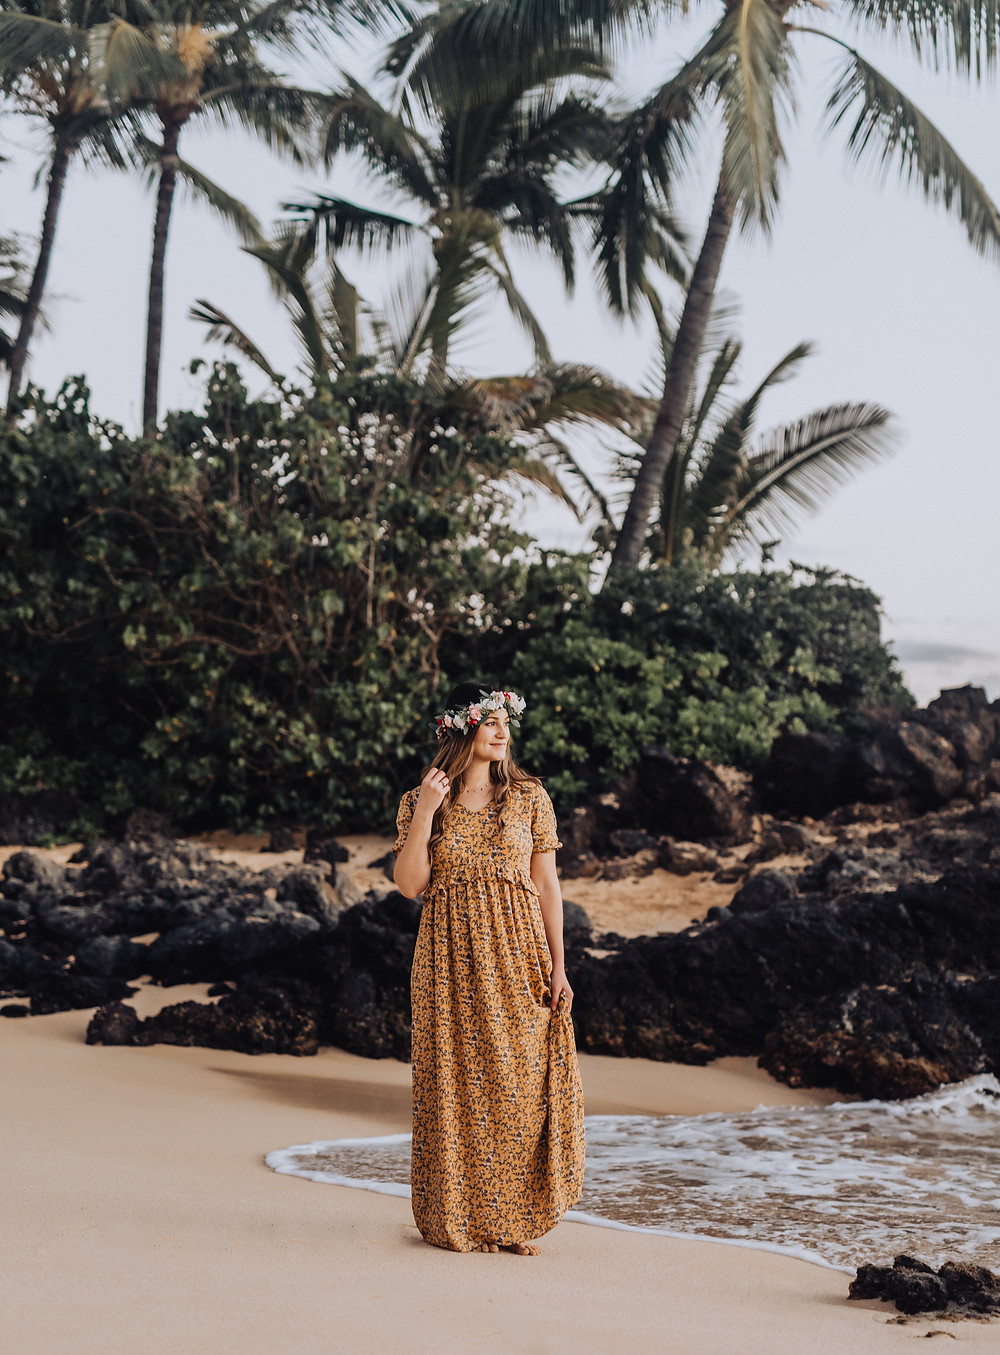 Woman standing on a beach in Maui Hawaii wearing a long mustard dress.